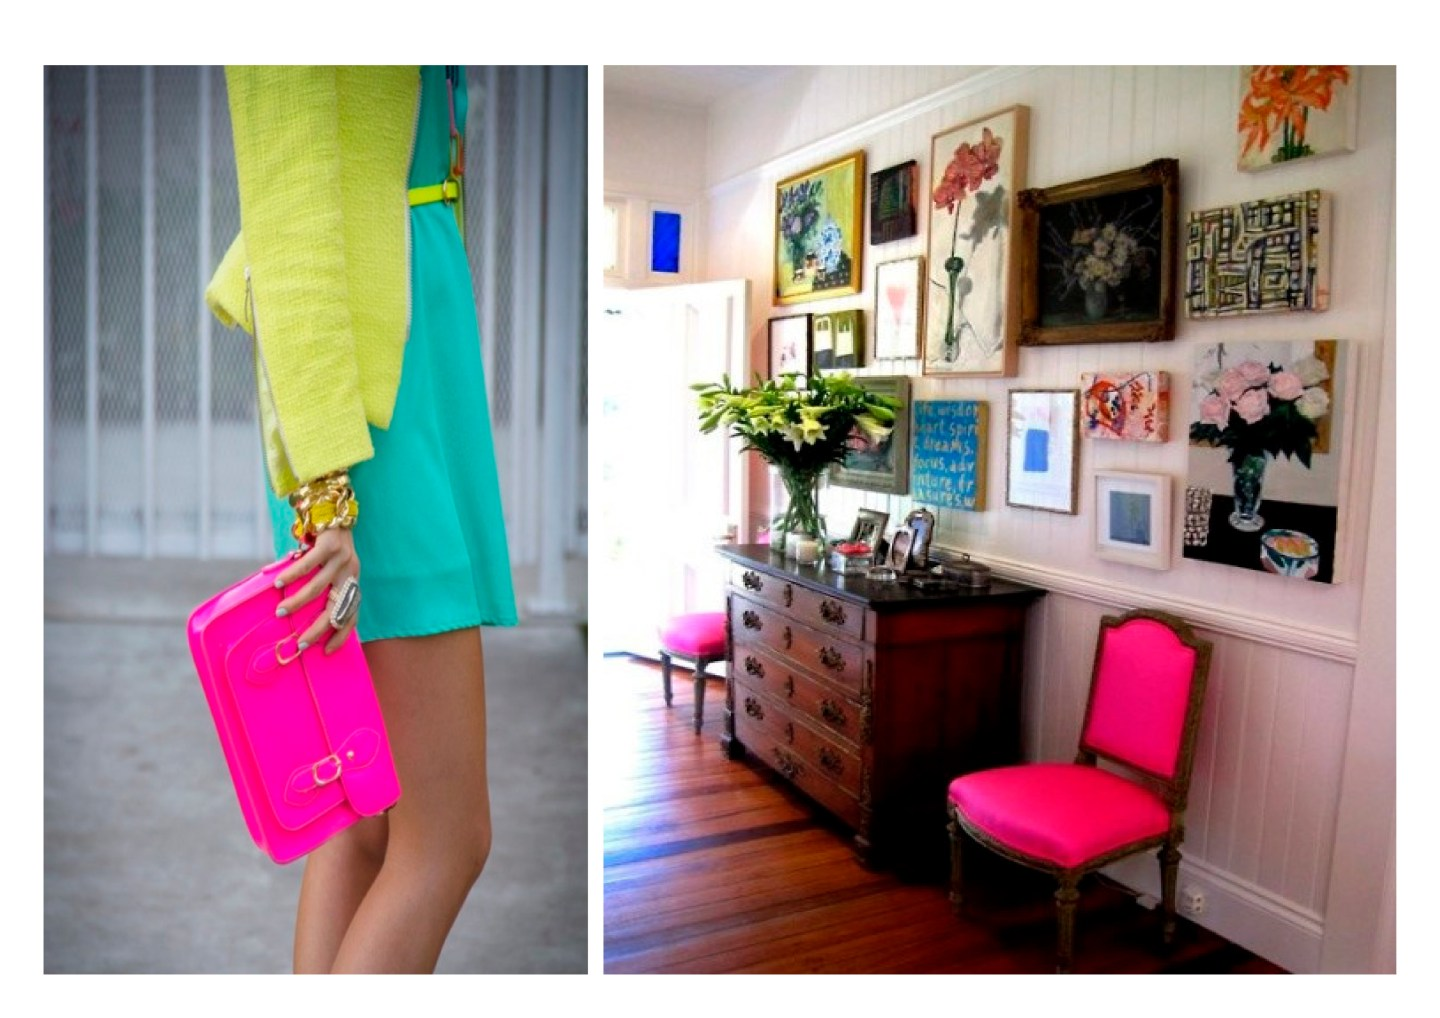 Neon: New fashion and home decor trend